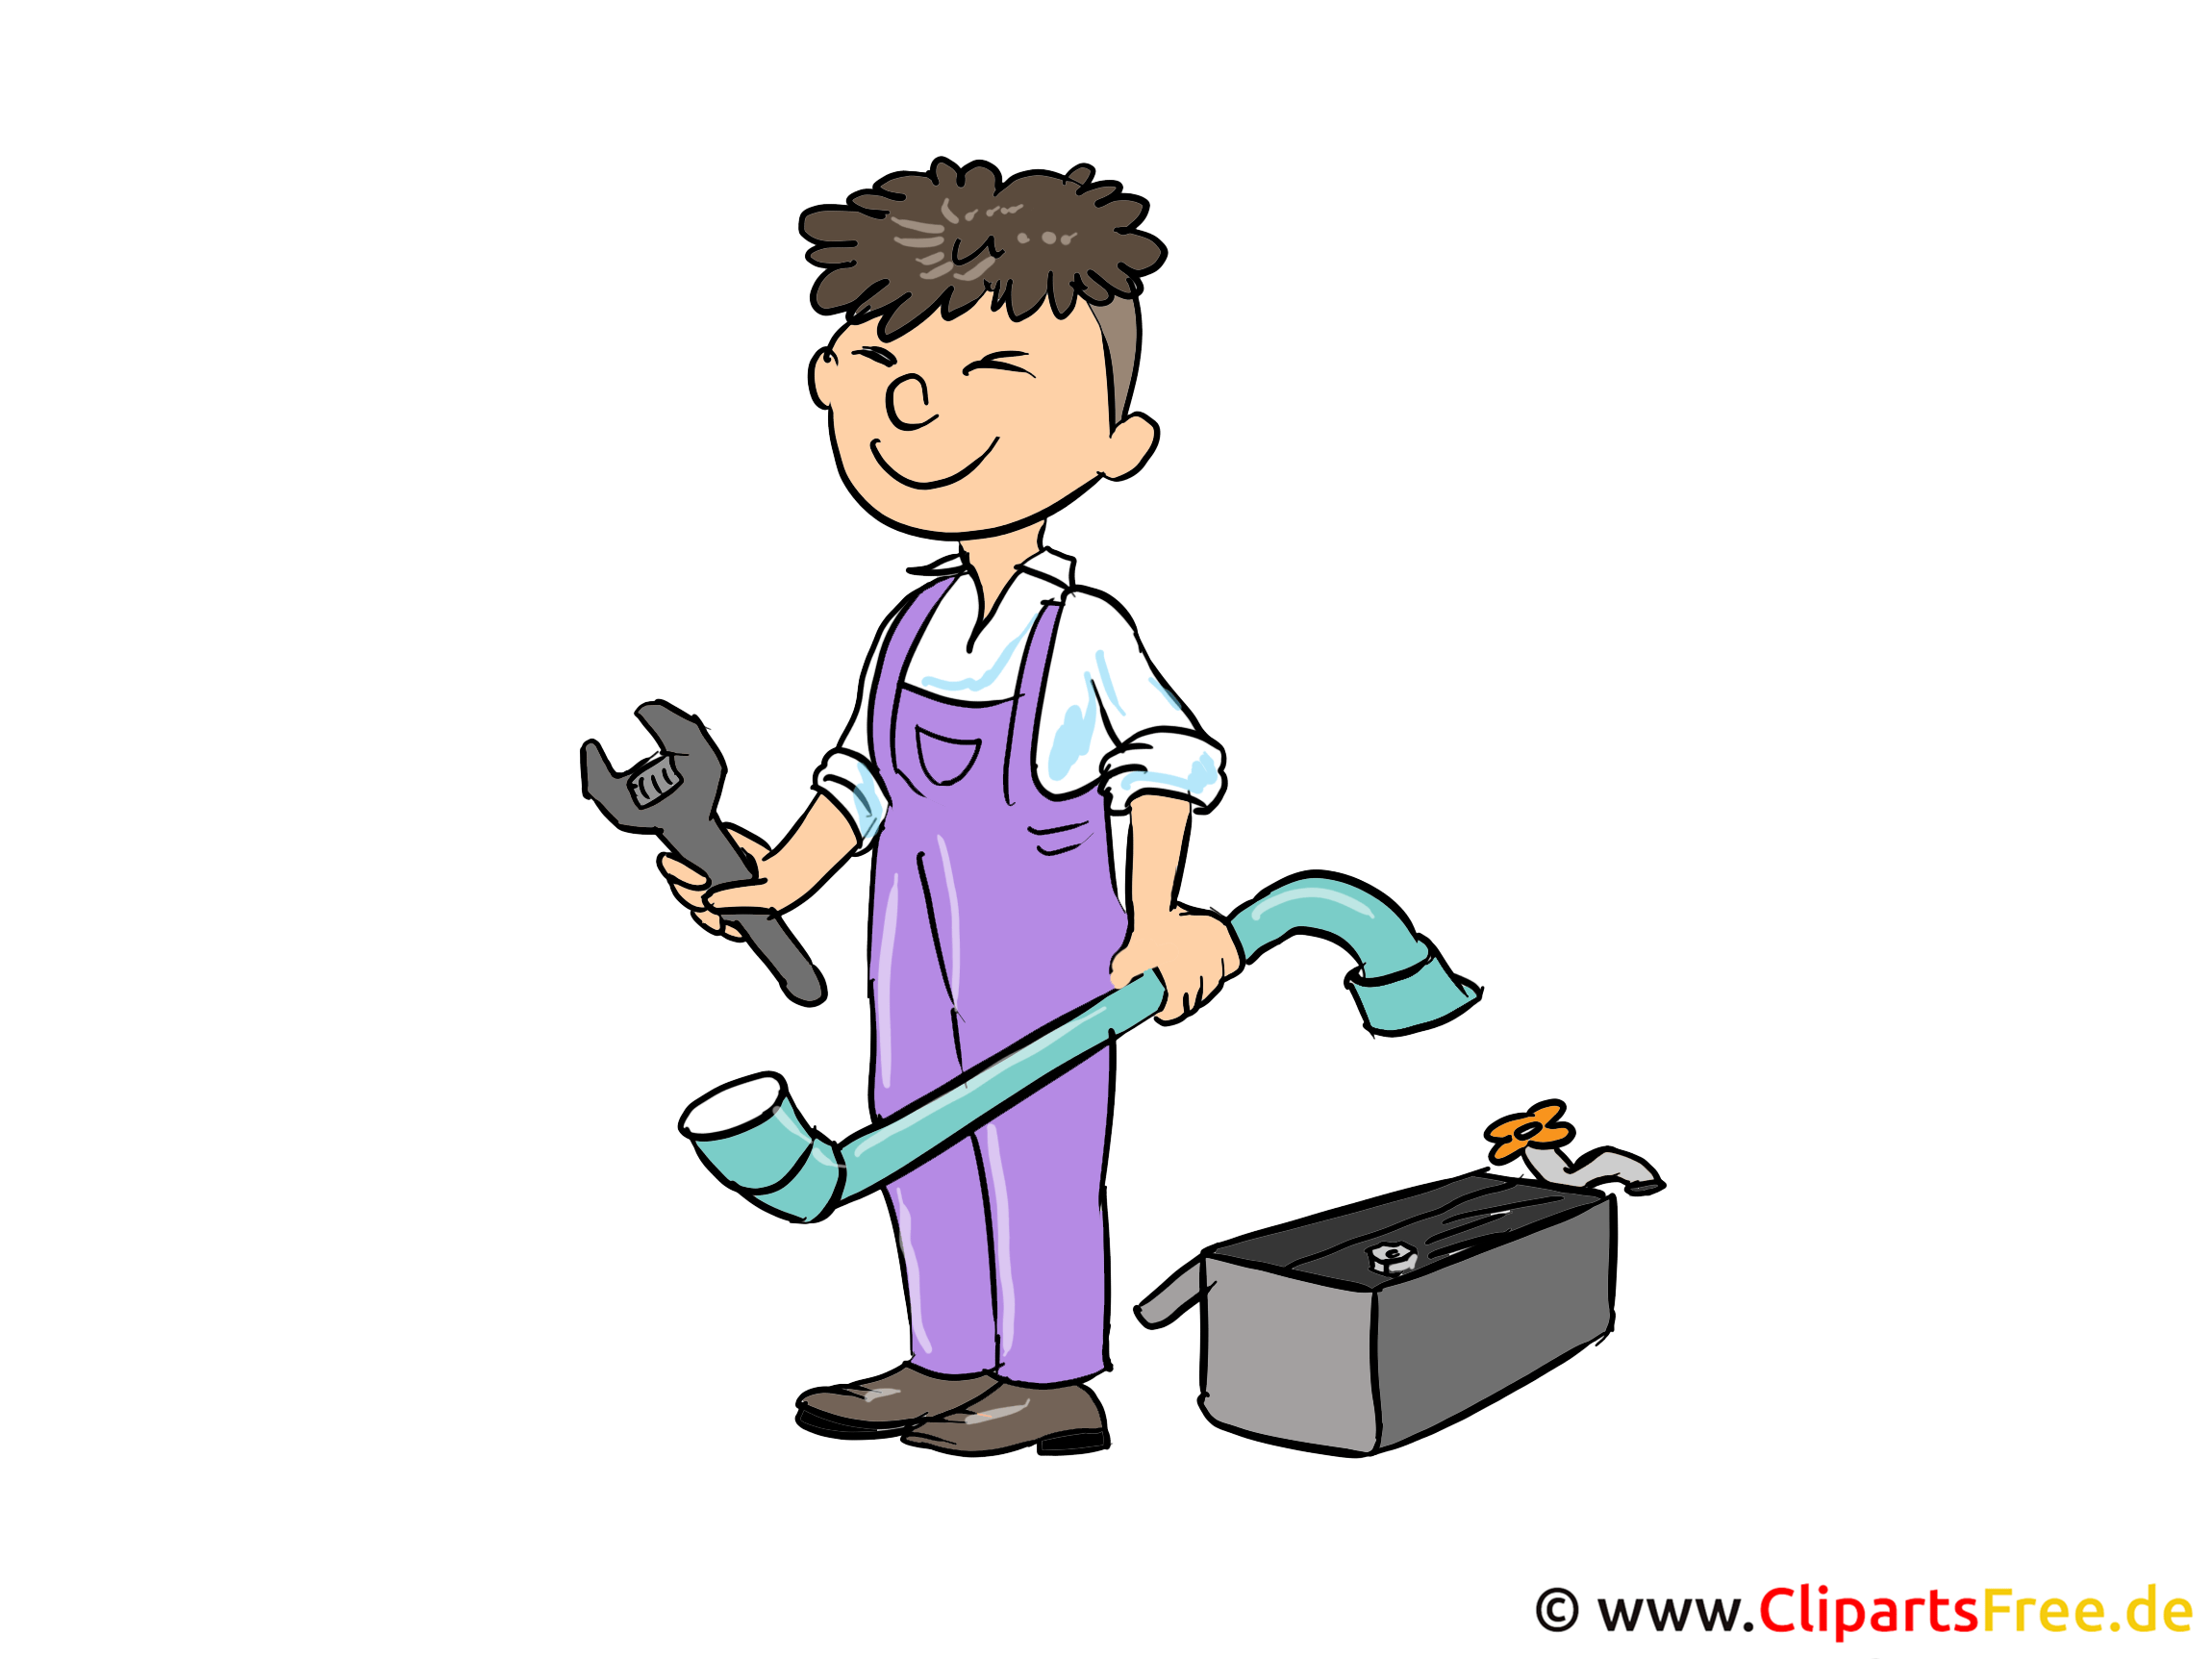 Bilderrahmen Programm Handwerker, Schlosser Clipart, Bild, Cartoon, Illustration